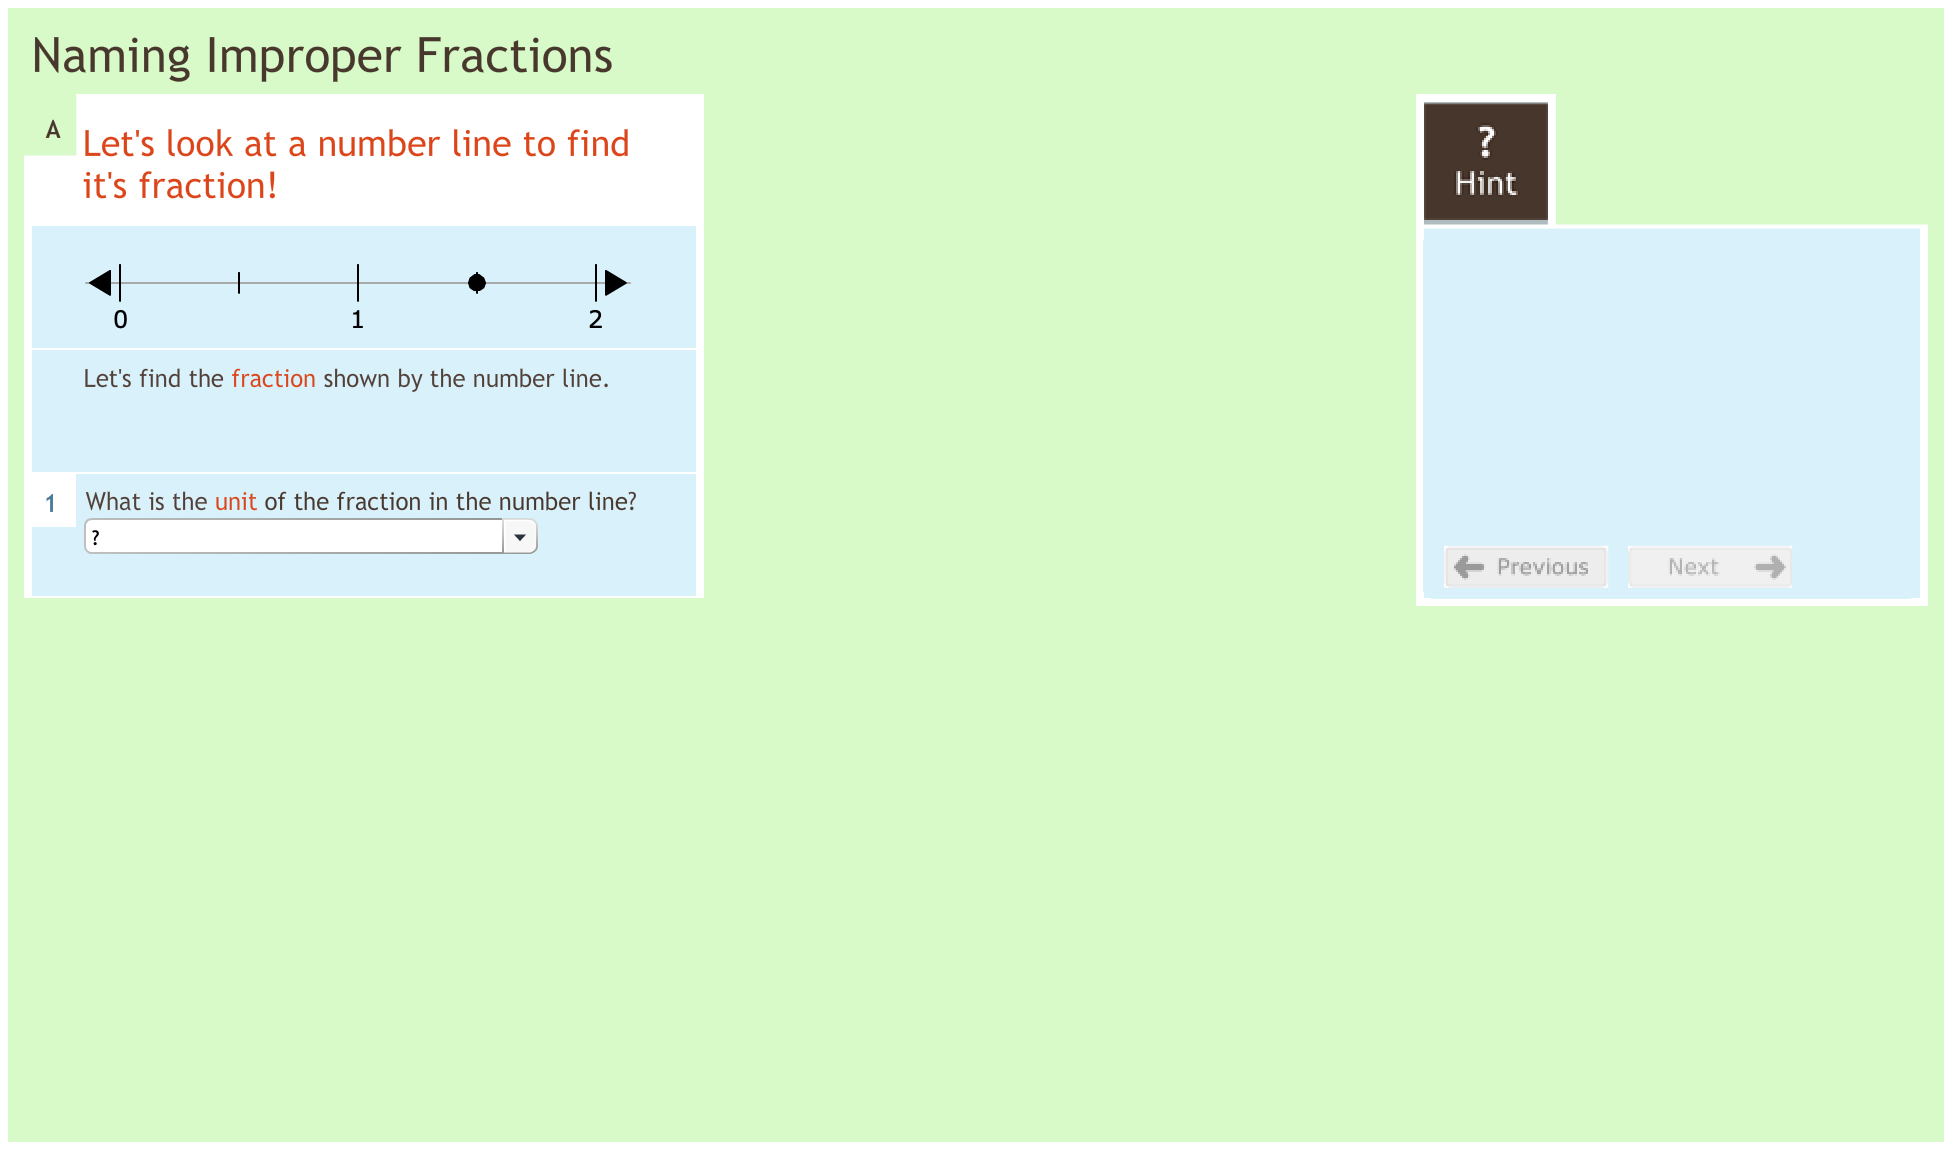 Fractions 3.4 Naming improper fractions